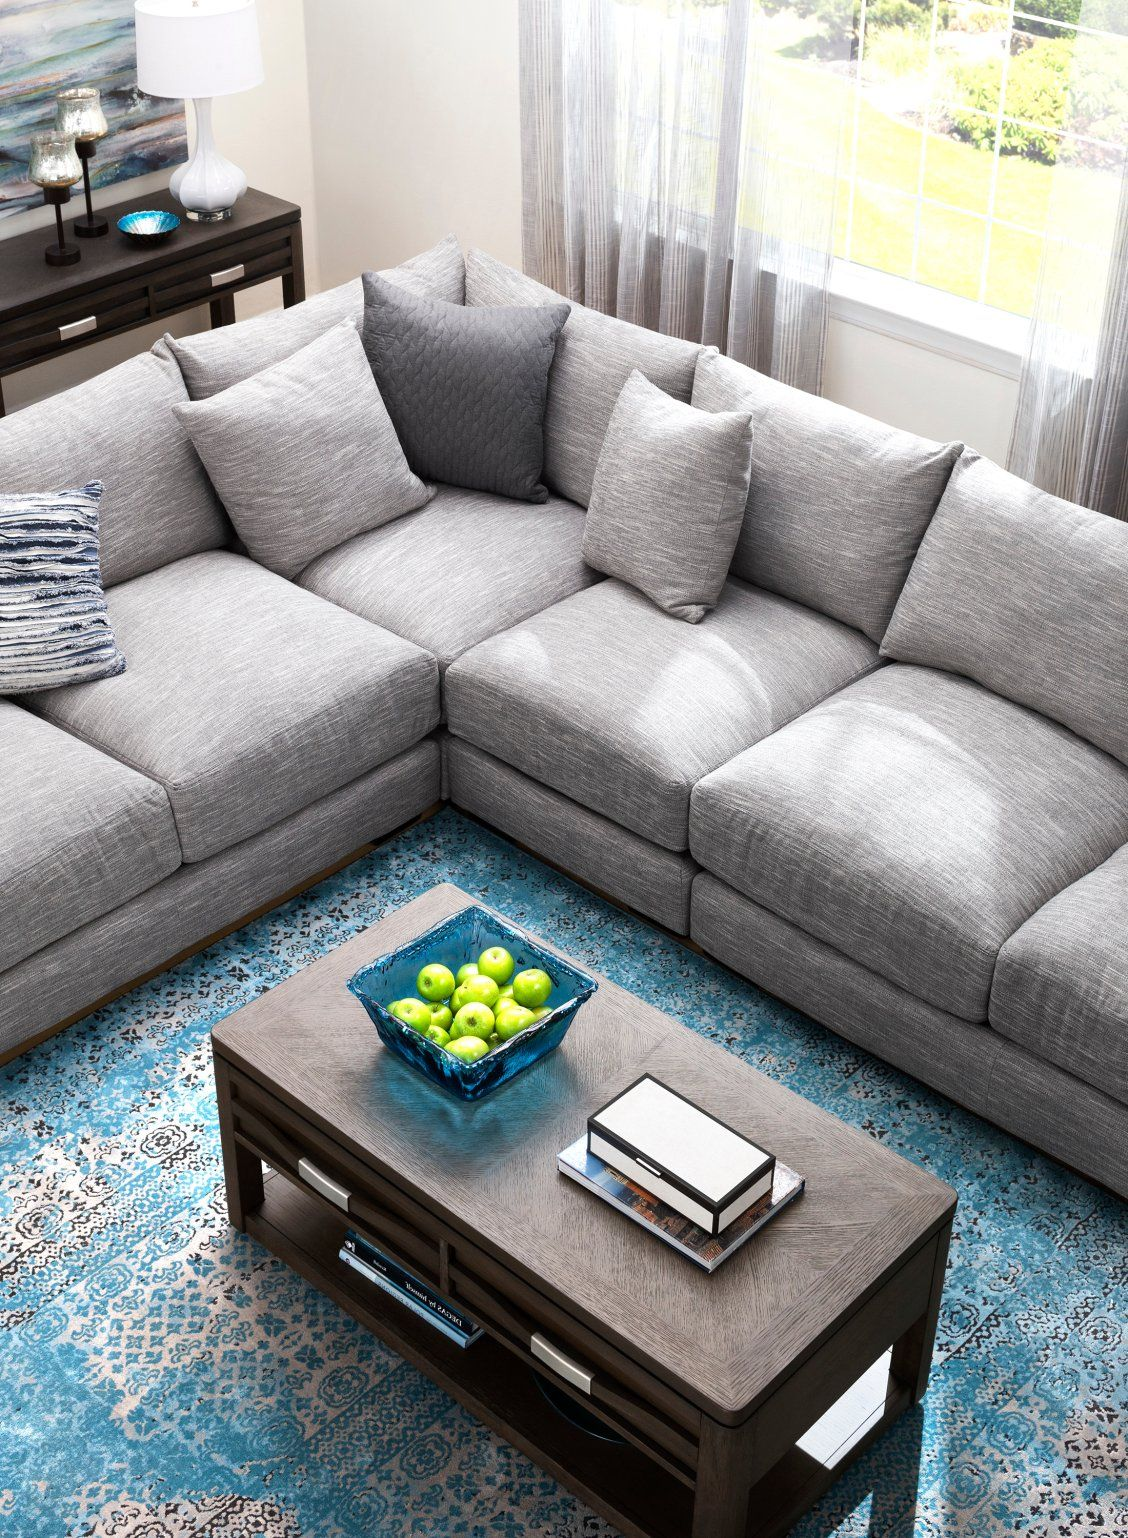 Peachy Leighton 3 Pc Sectional Sofa In 2019 Grey Sectional Sofa Unemploymentrelief Wooden Chair Designs For Living Room Unemploymentrelieforg